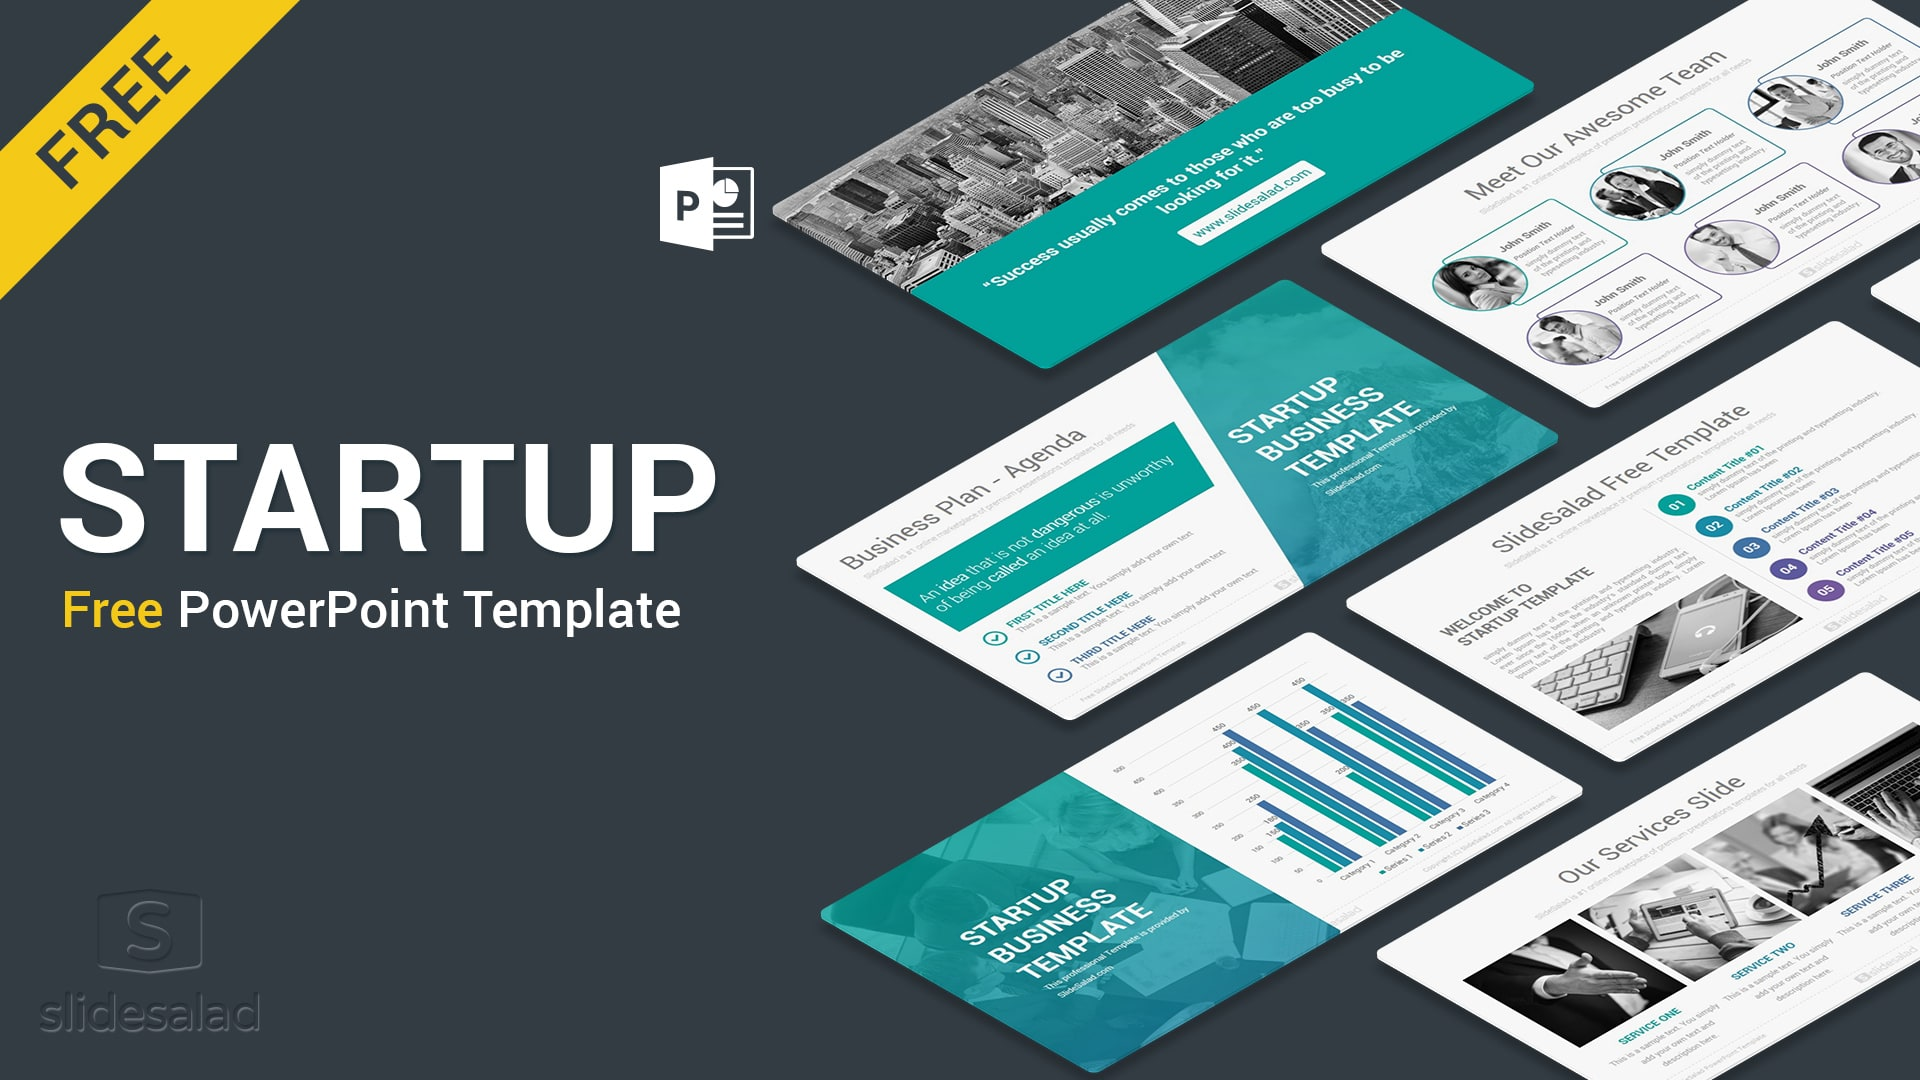 Startup Free PowerPoint Presentation Templates – Best Free Innovative PPT Themes for Startup Projects & Entrepreneurs